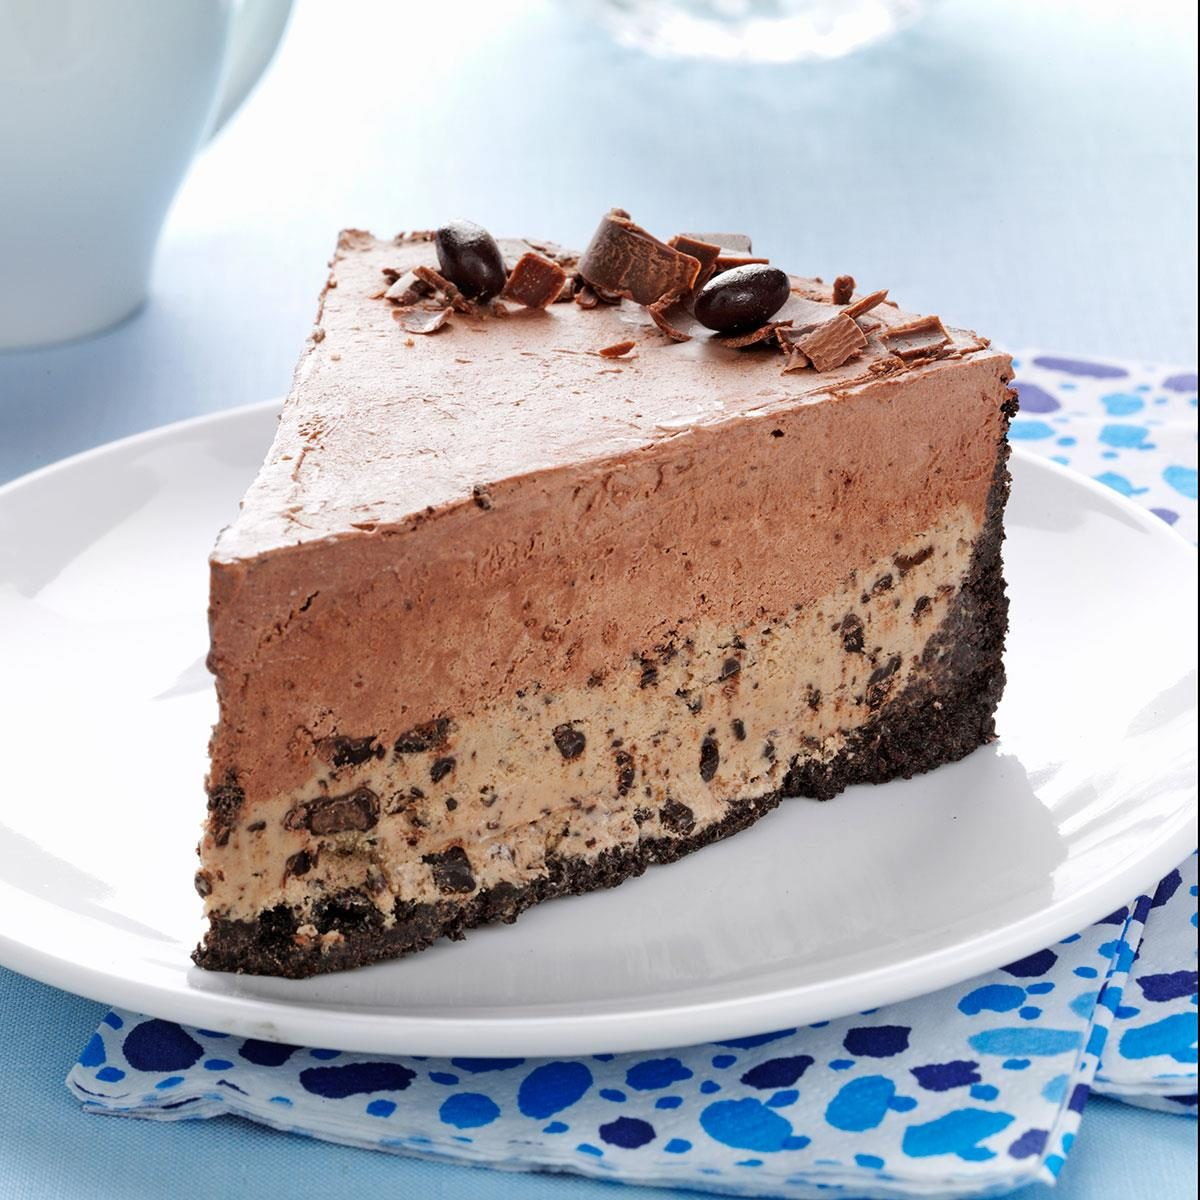 Chocolate-Coffee Bean Ice Cream Cake Recipe